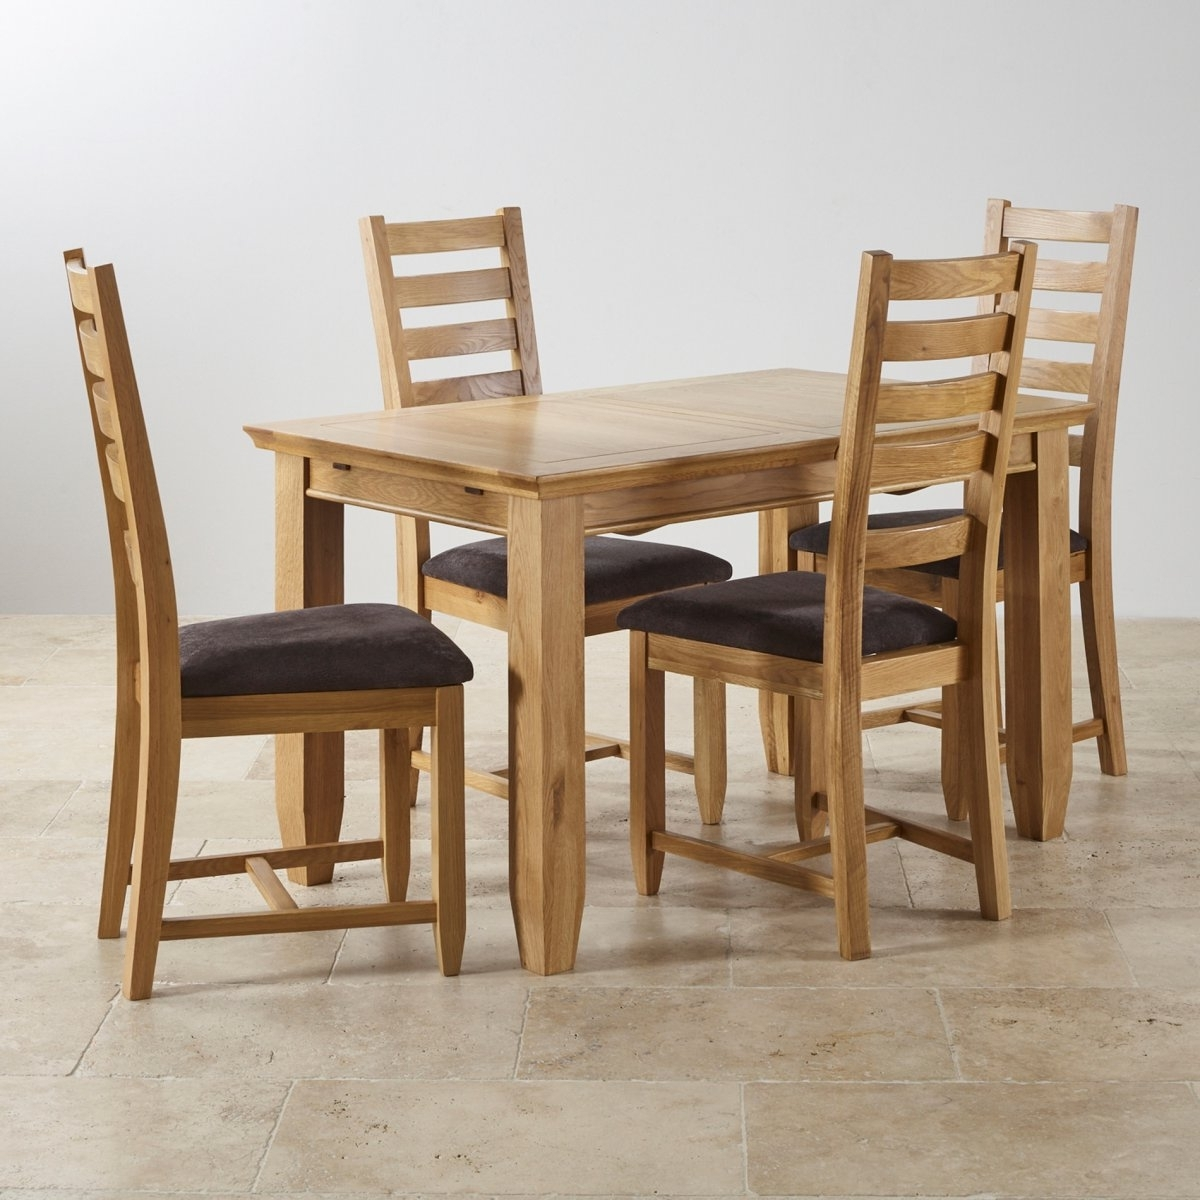 Extending Oak Dining Tables And Chairs for Newest Classic Extending Dining Set In Oak Dining Table 6 Chairs Wooden